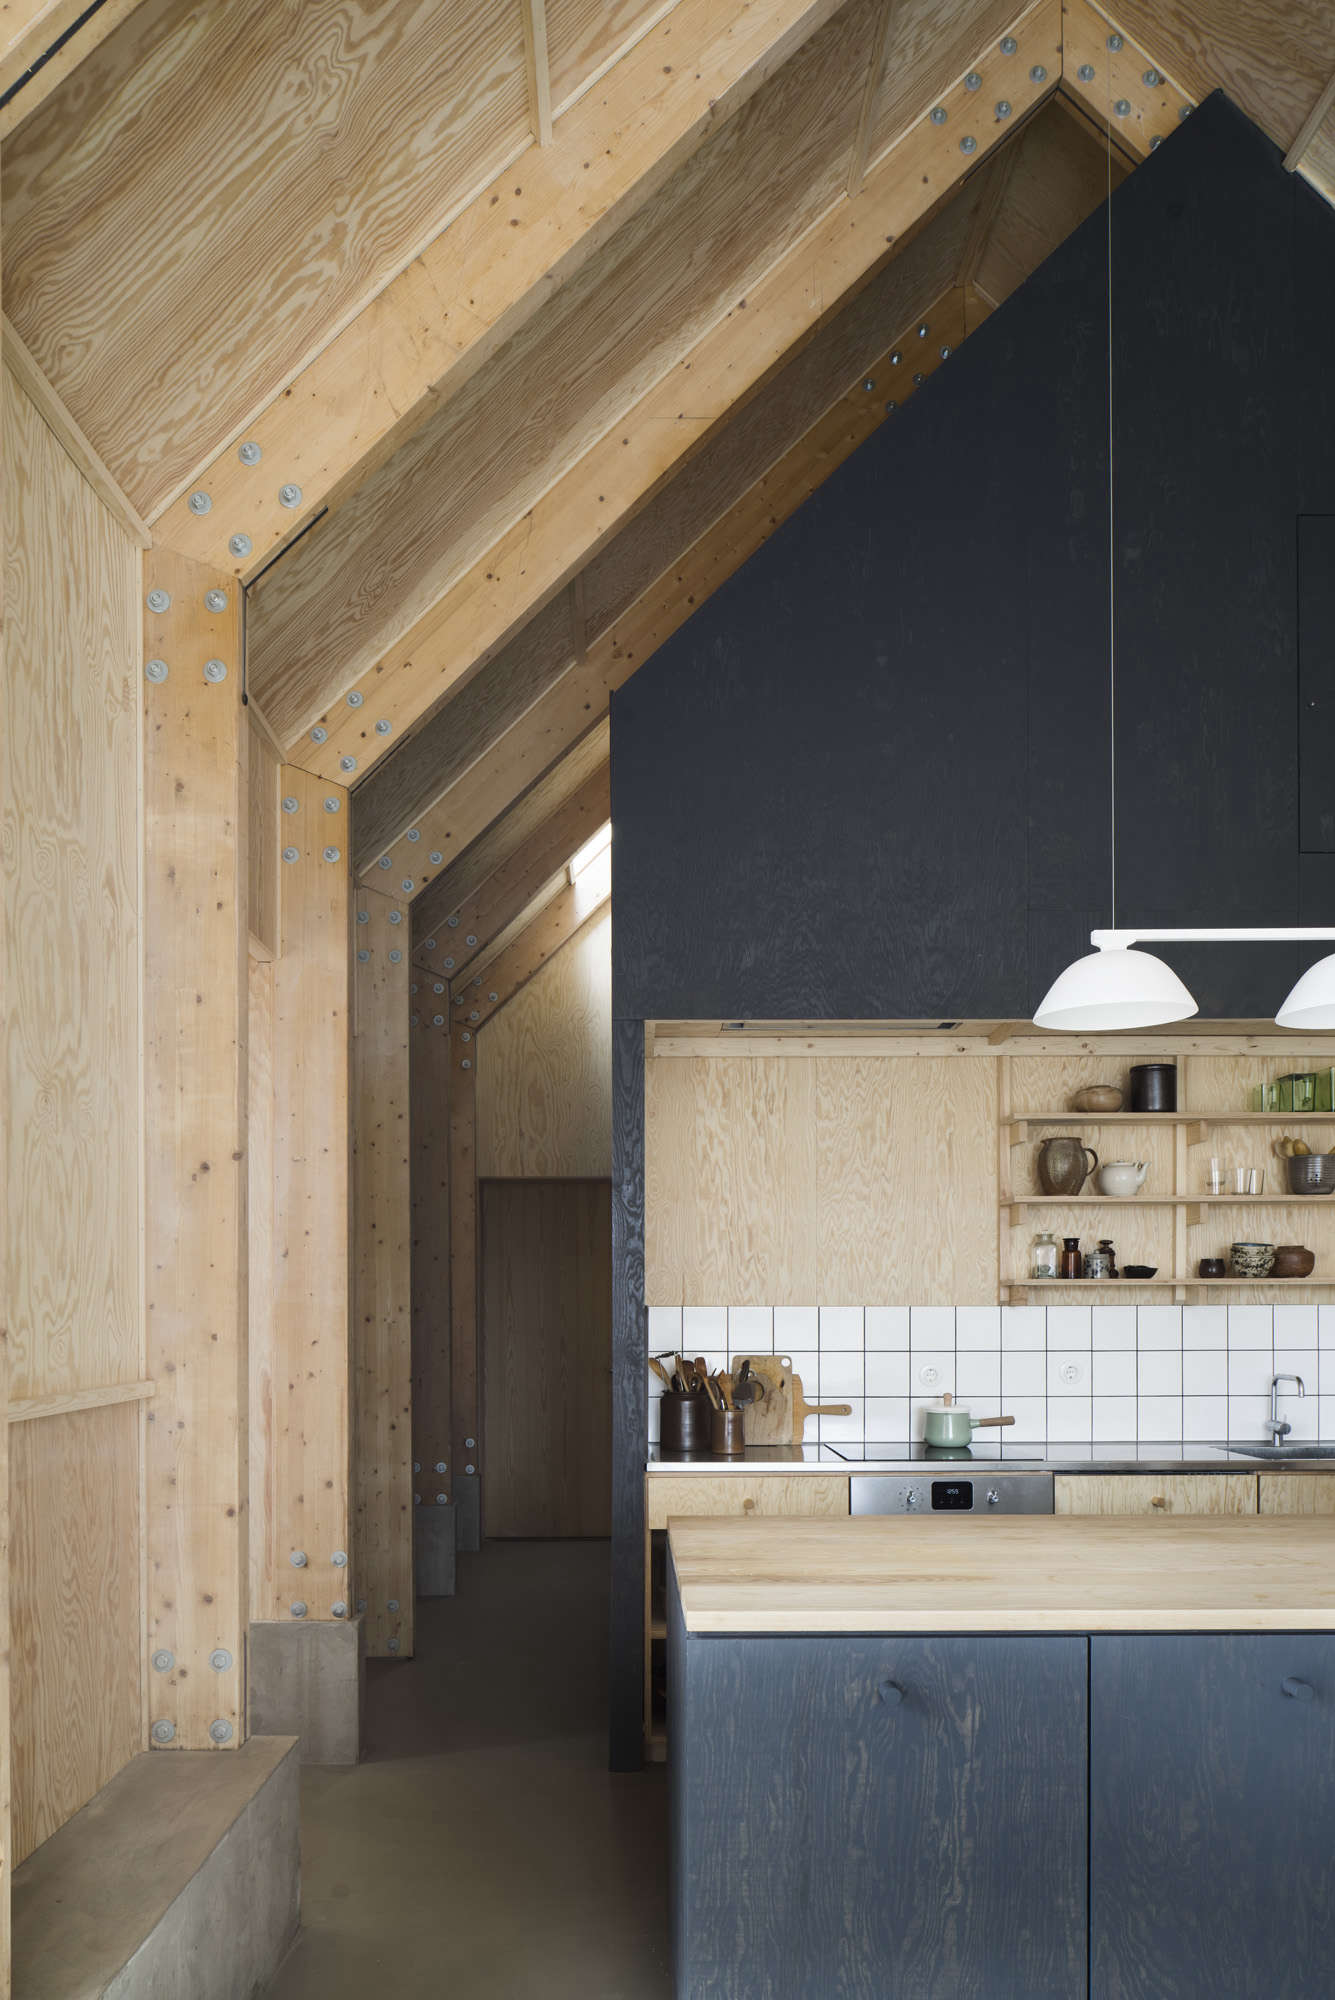 Kitchen of the Week: A Cost-Conscious Kitchen in Sweden